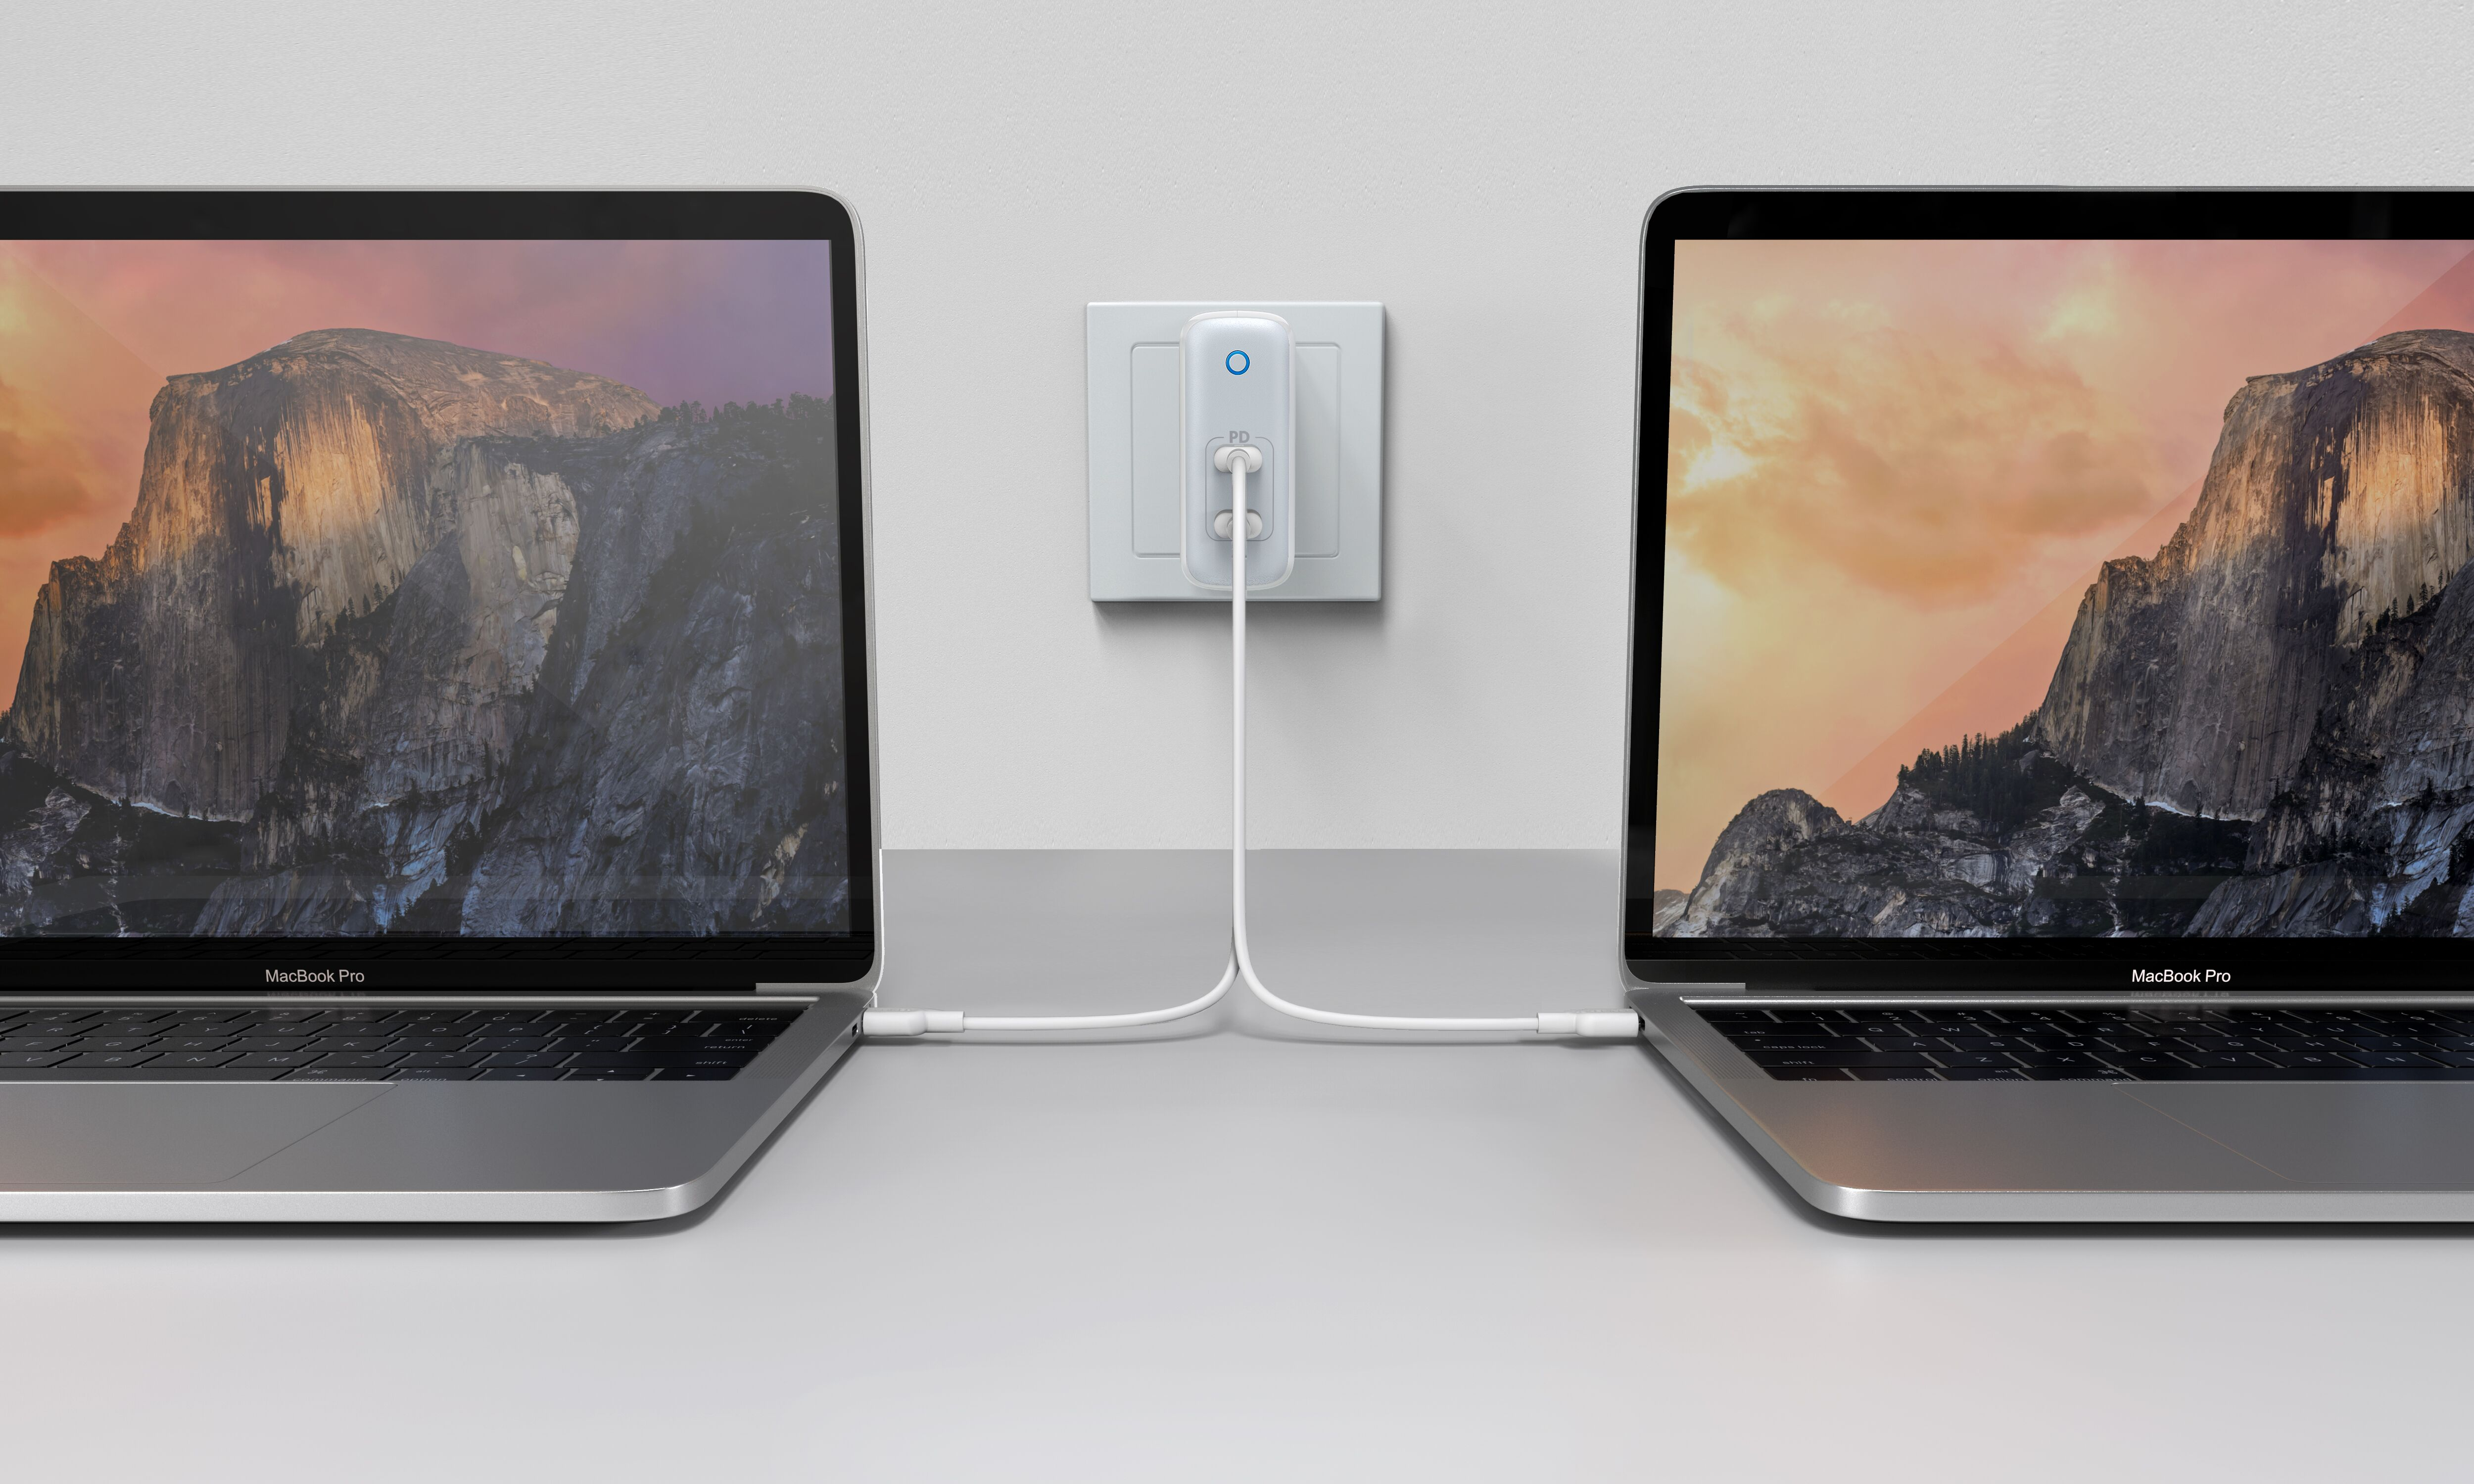 Anker's new 60W USB-C GaN charger looks like the one we've been waiting for